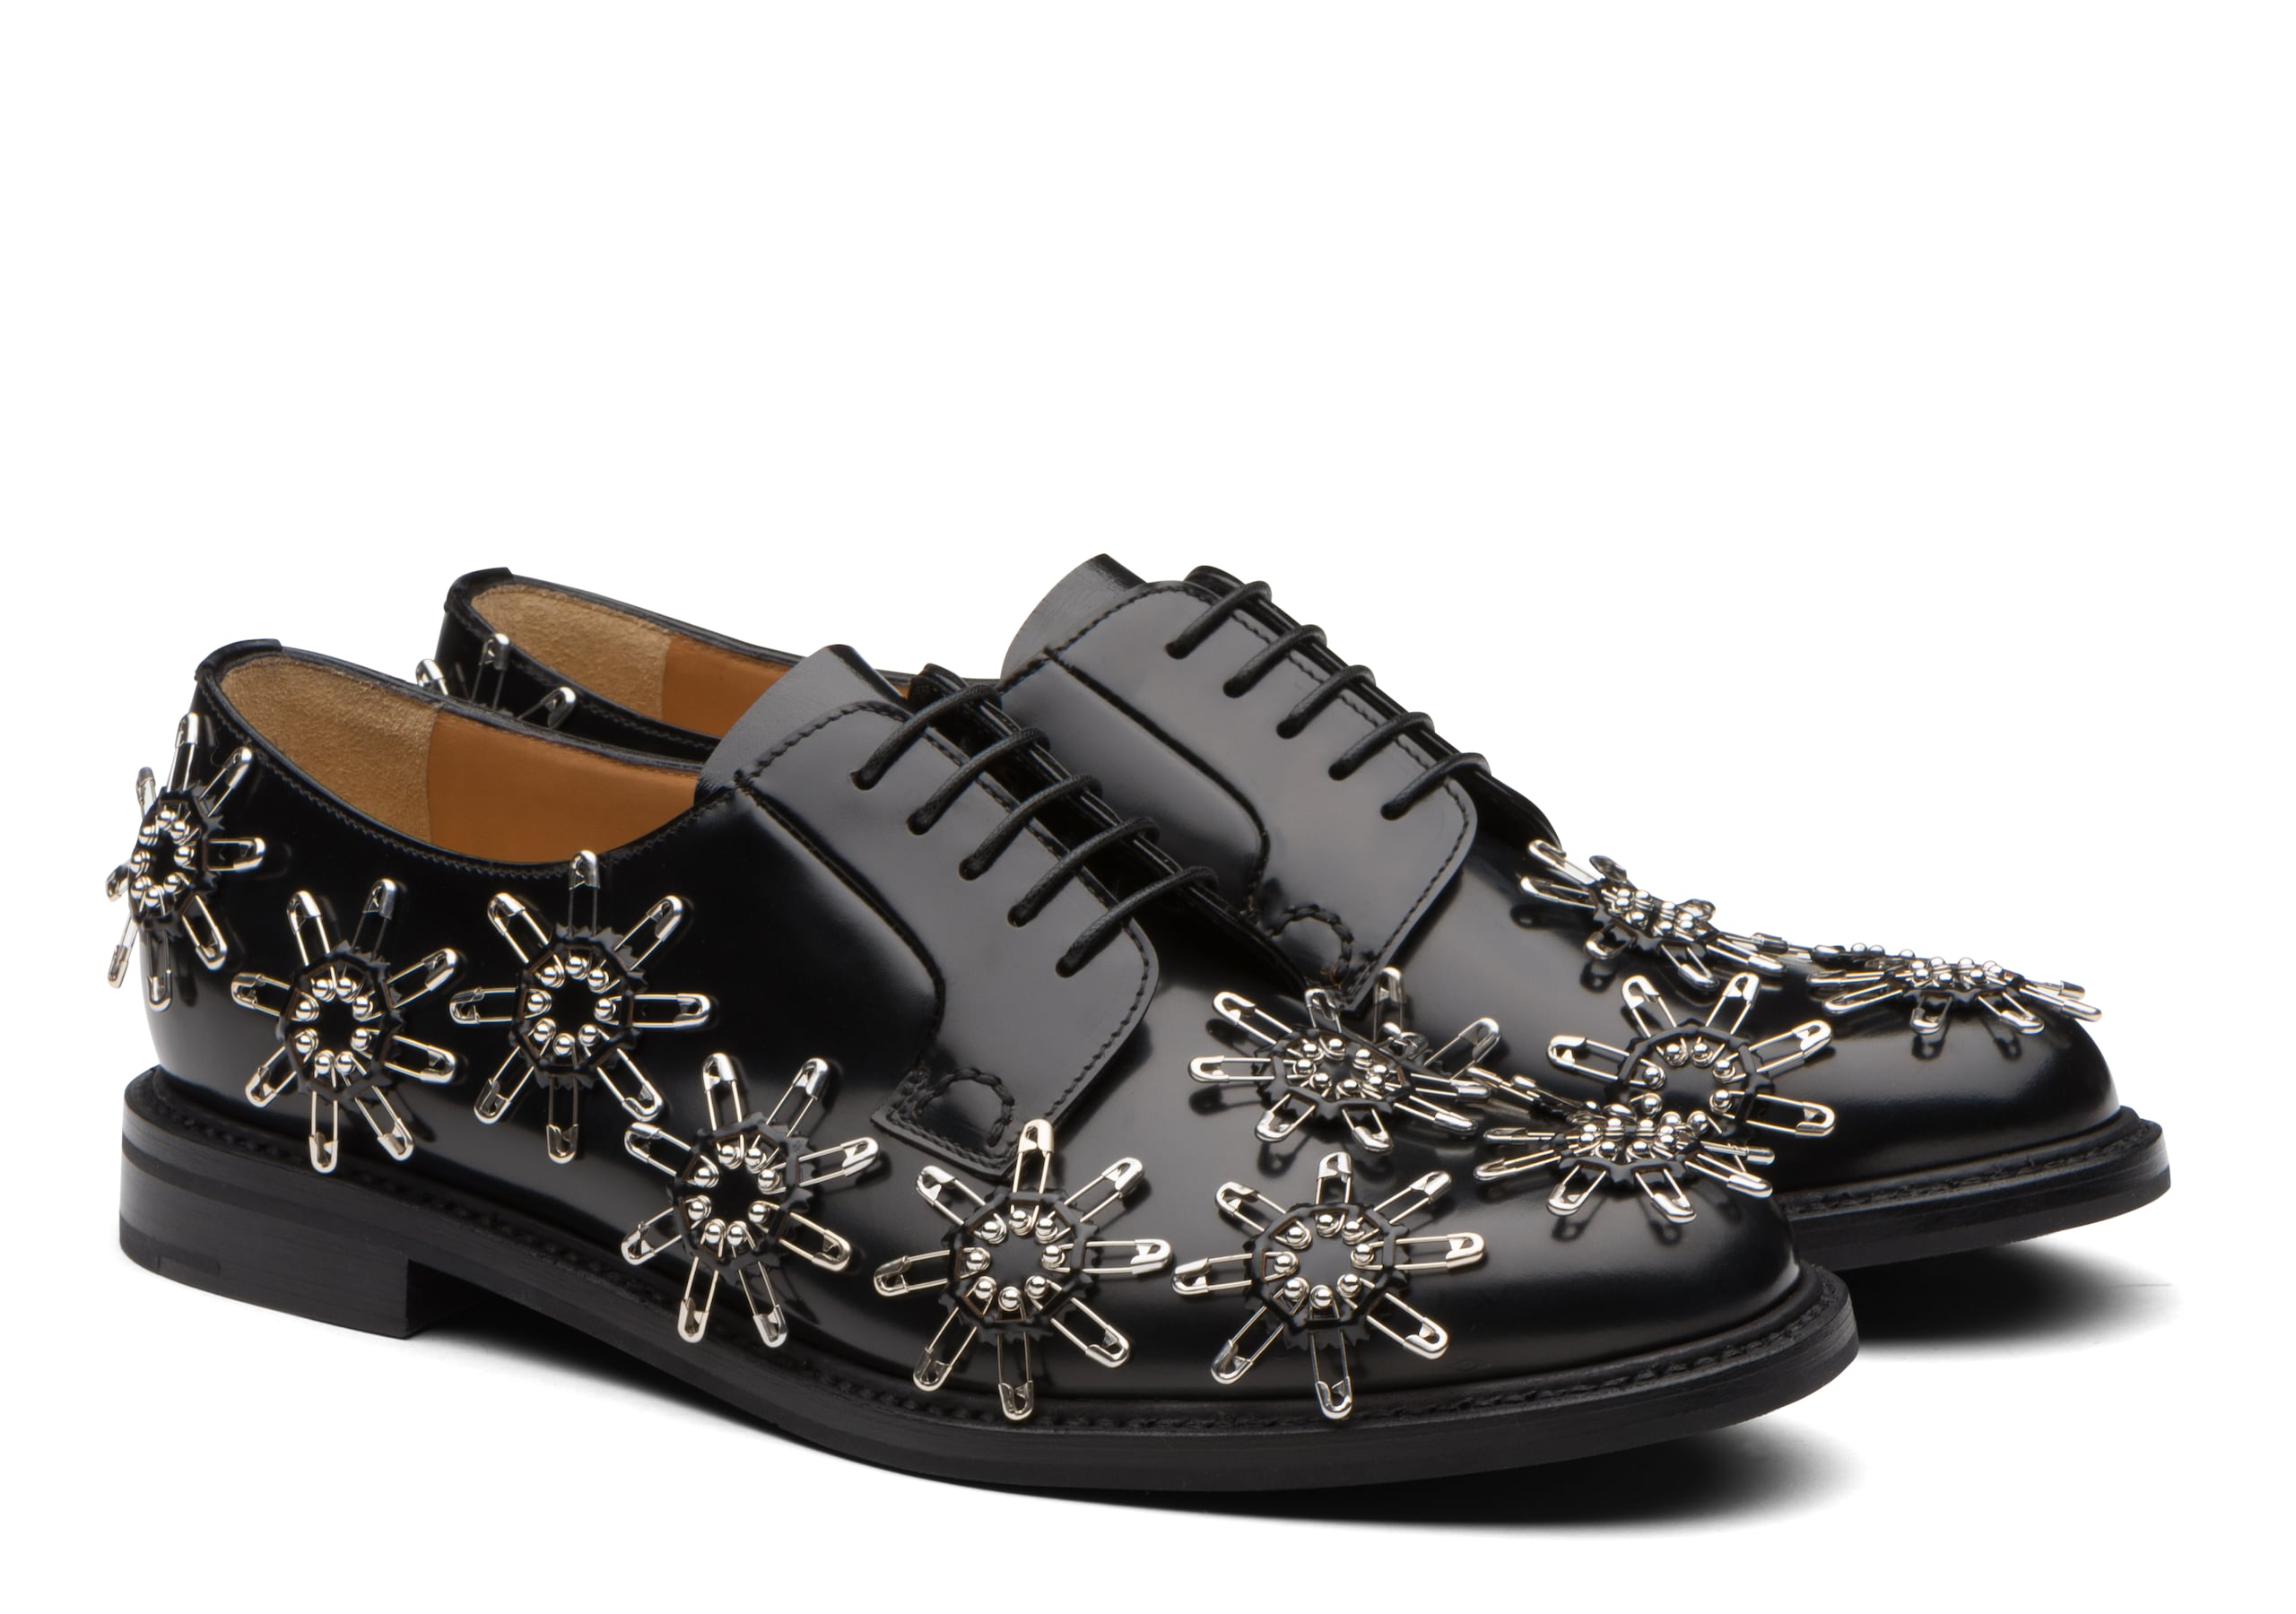 Shannon 11 x noir kei ninomiya Church's Polished Binder Derby Stud Black